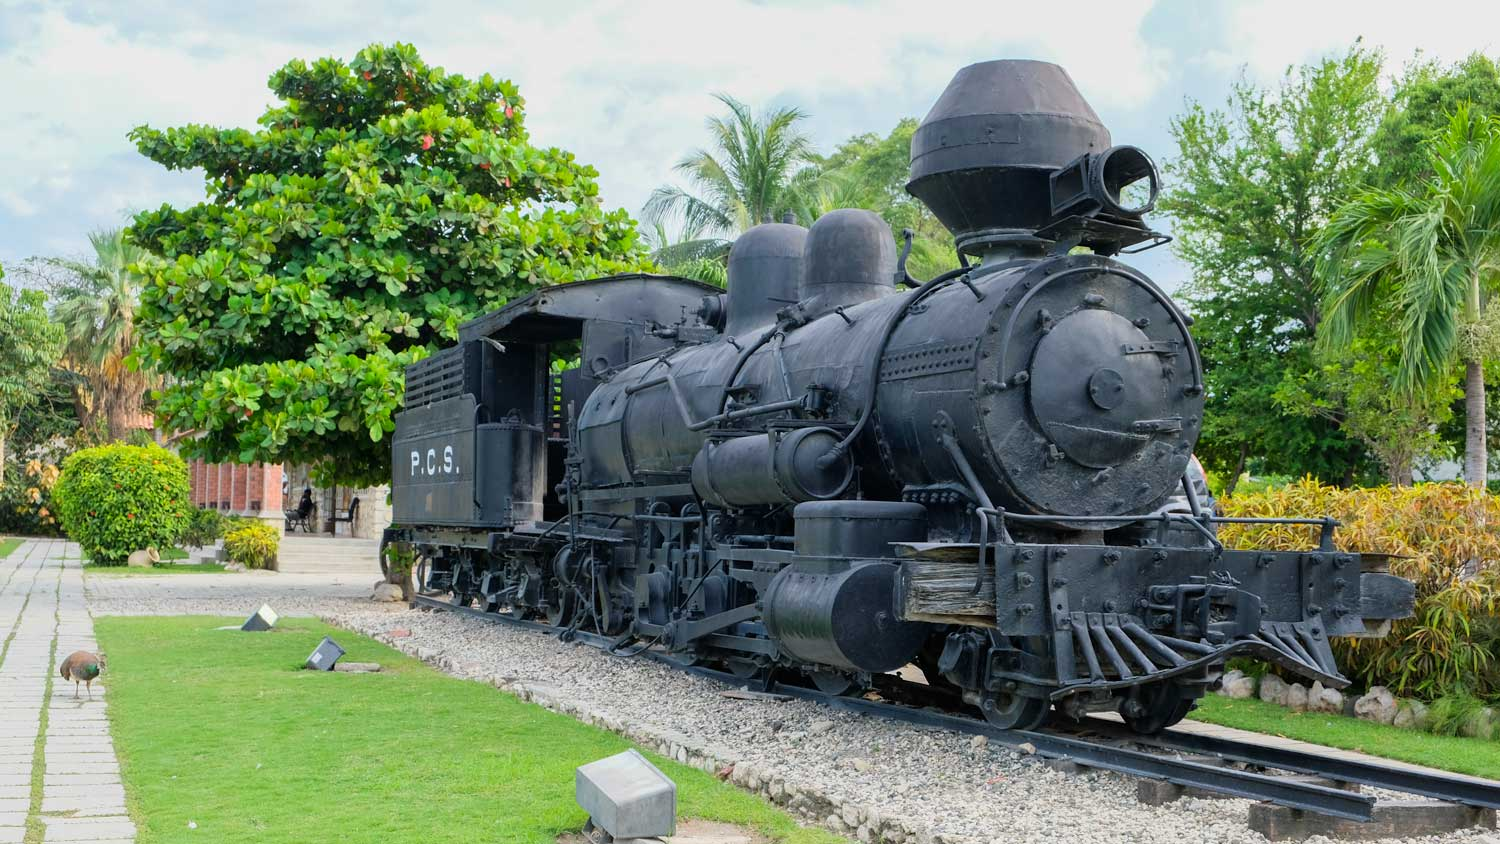 Old steam train on display at Parc Historique de la Canne à Sucre, Haiti